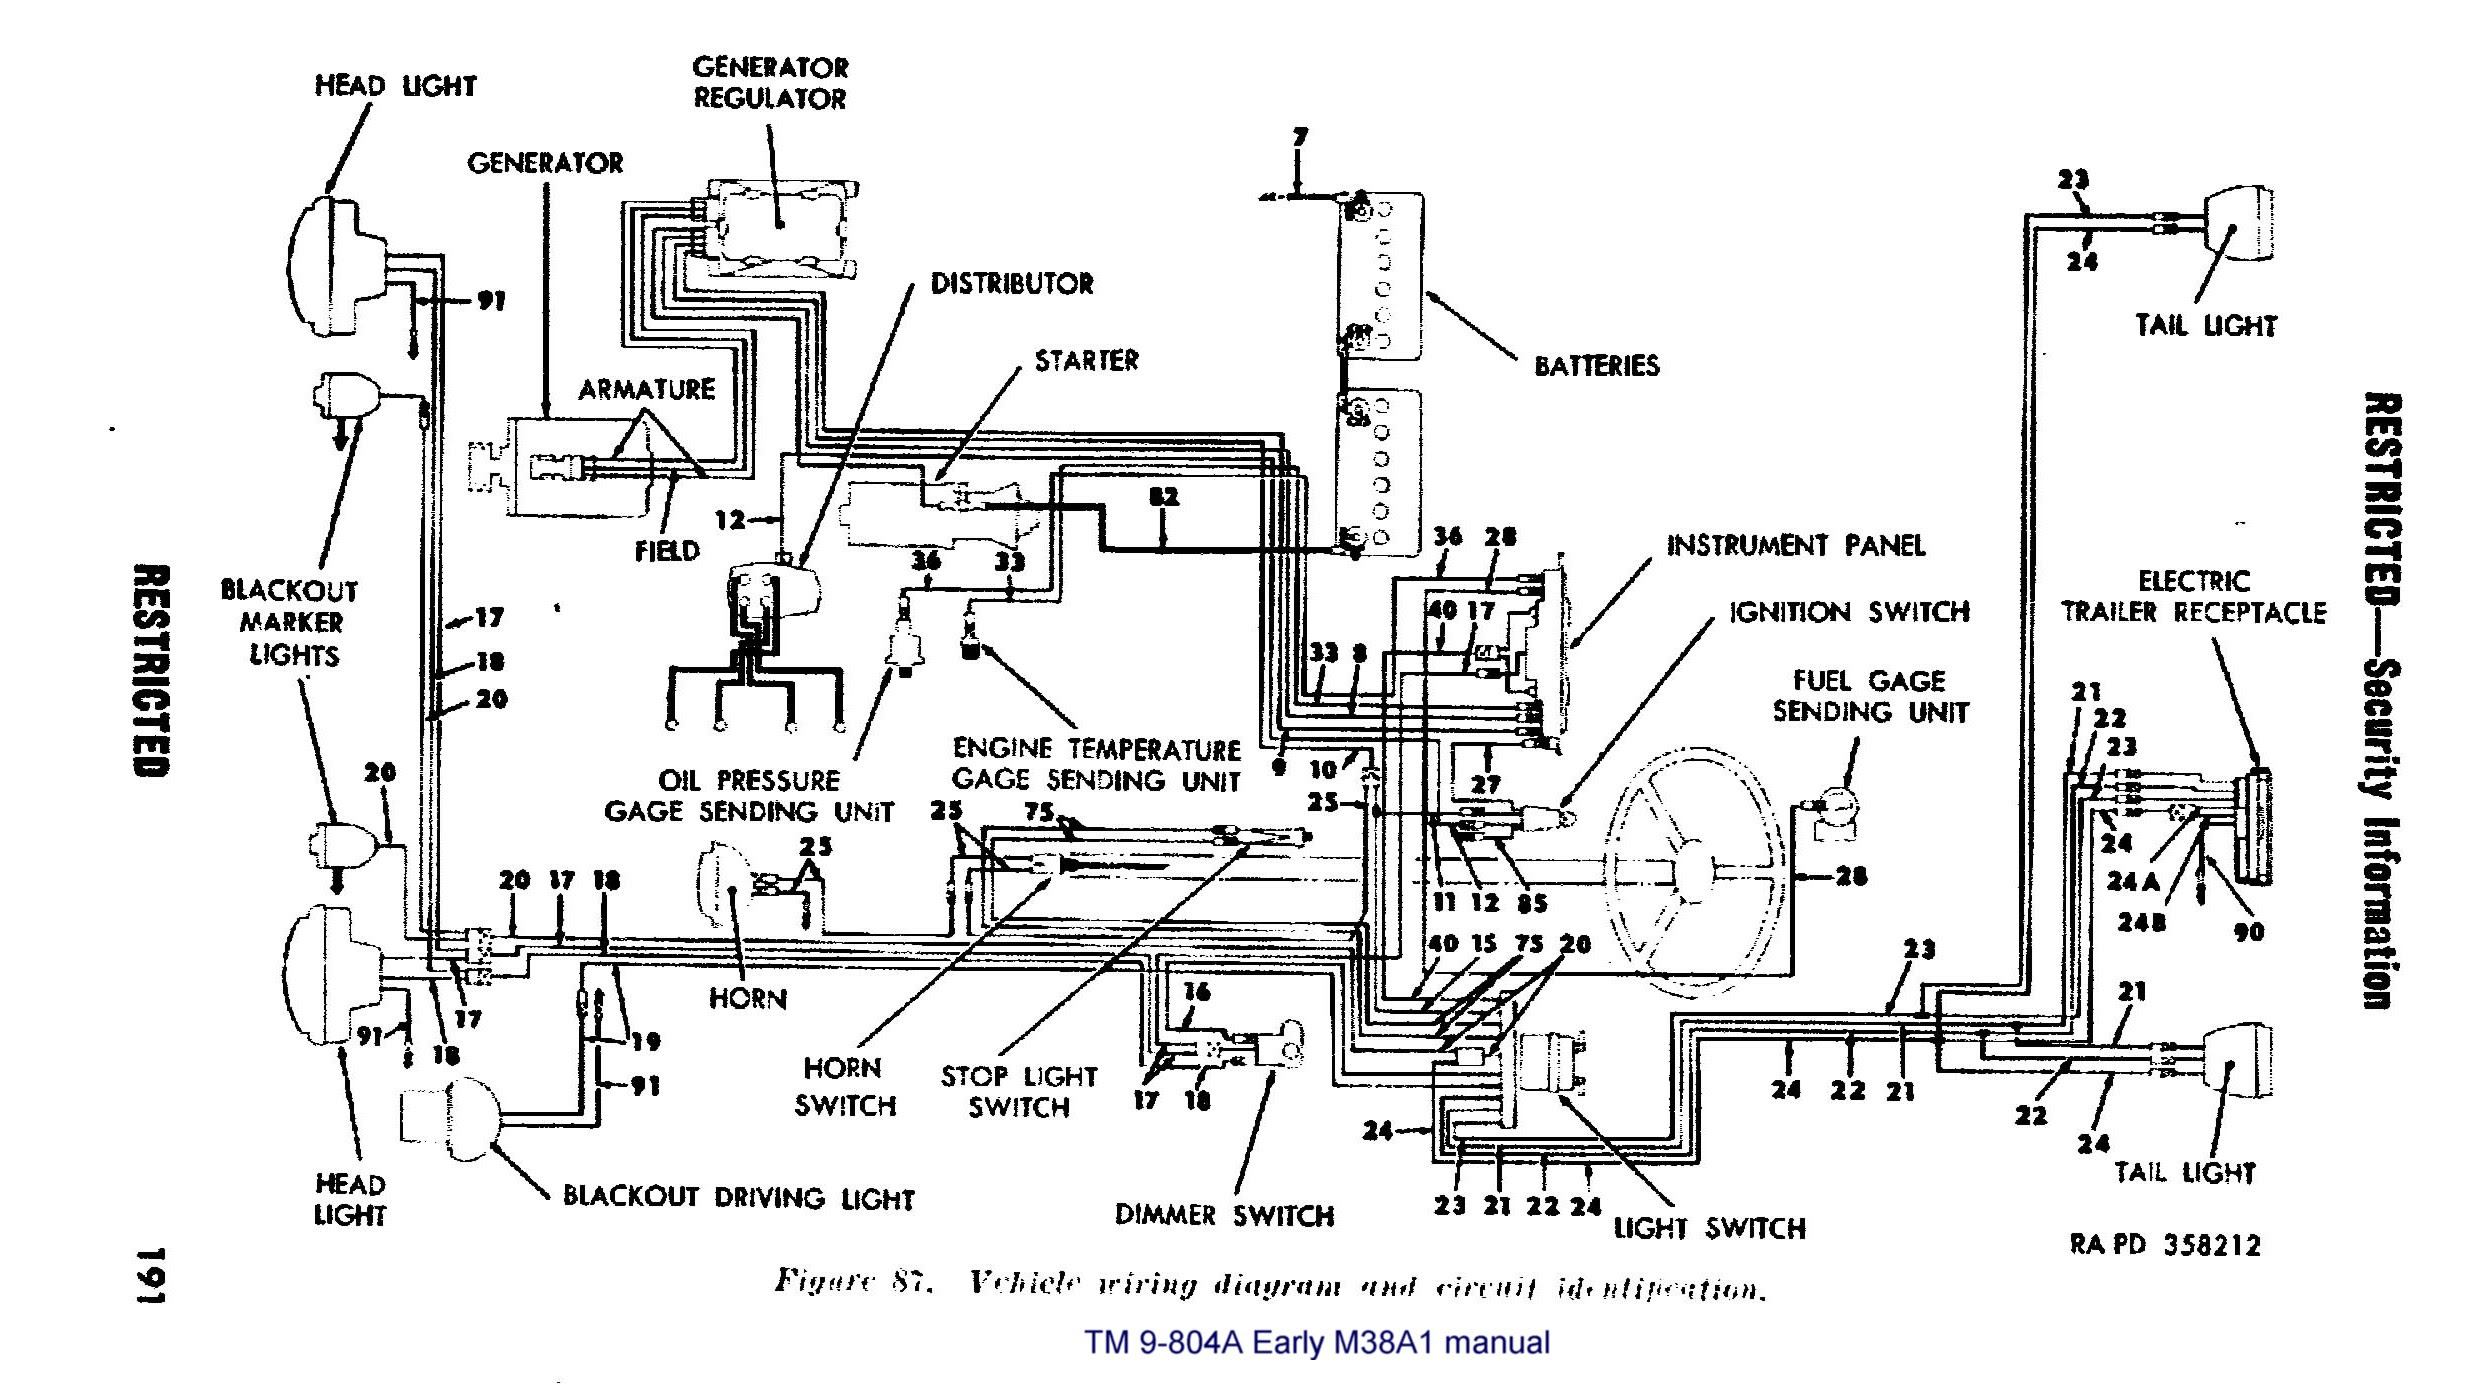 Blackout Wiring Diagram